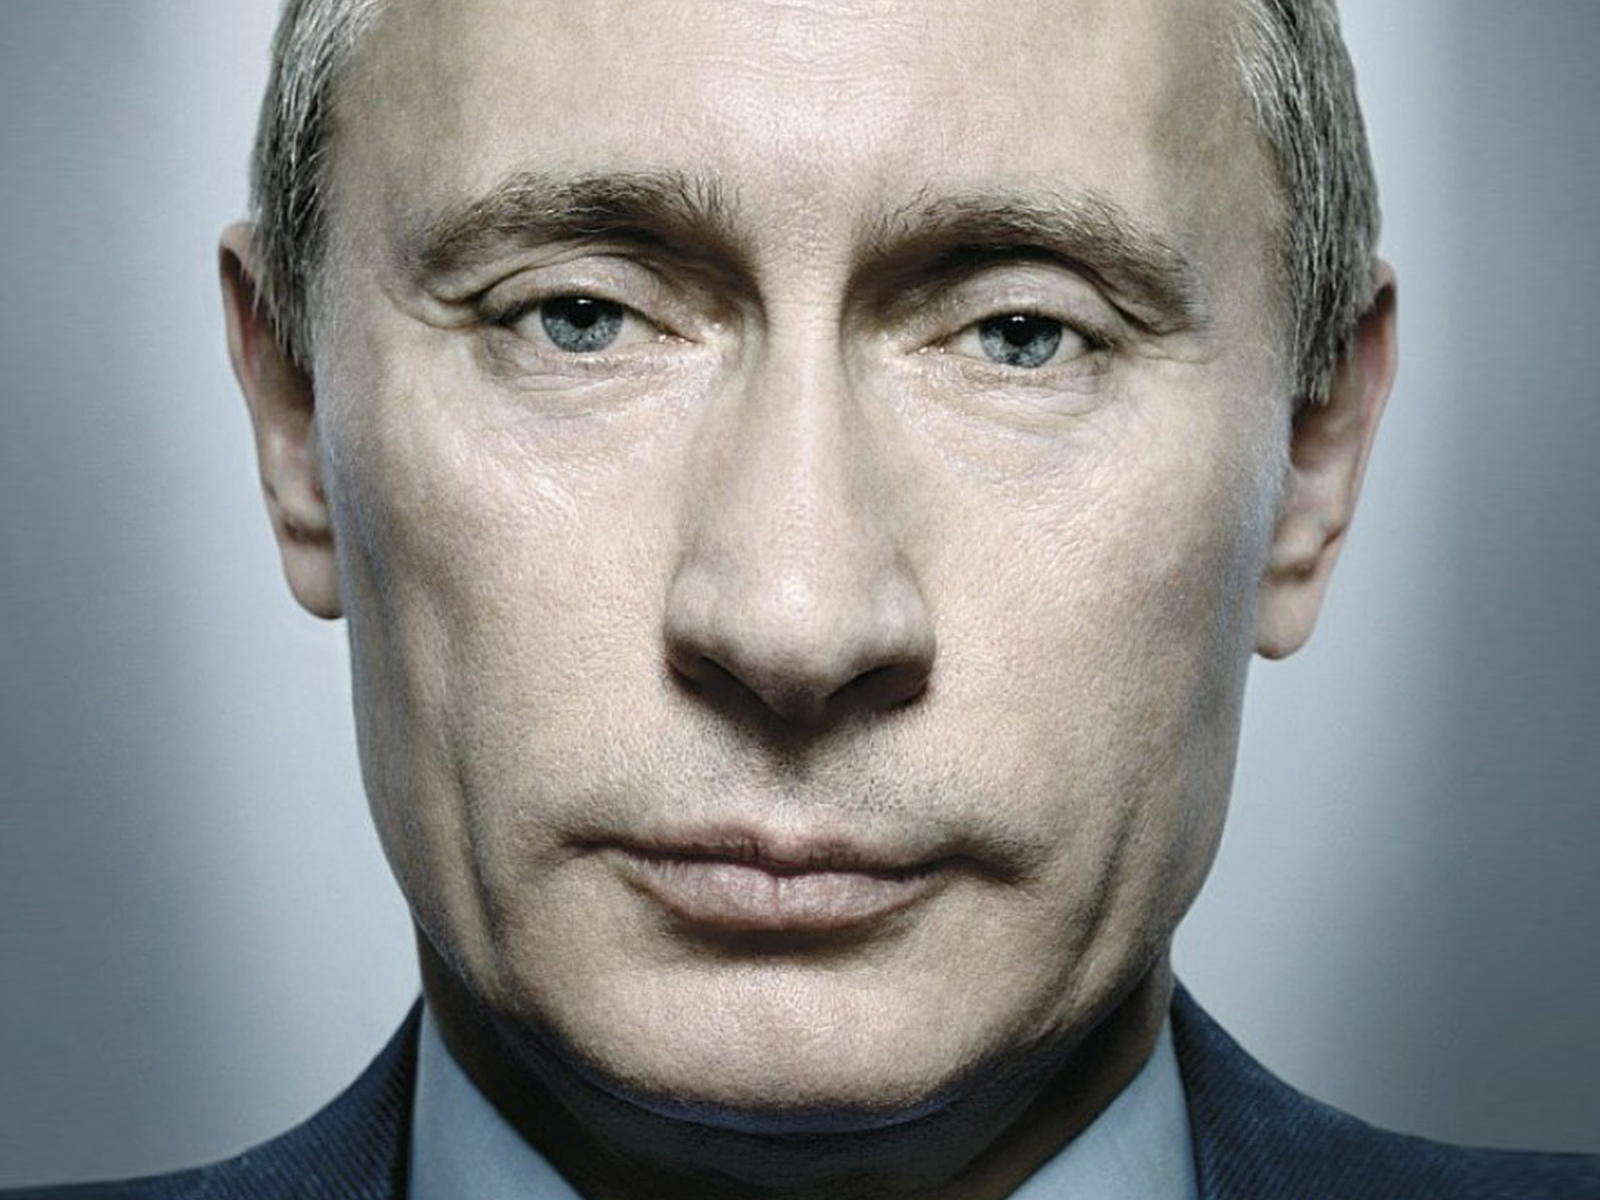 http://philebersole.files.wordpress.com/2013/09/vladimir-putin-time-magazine.jpg